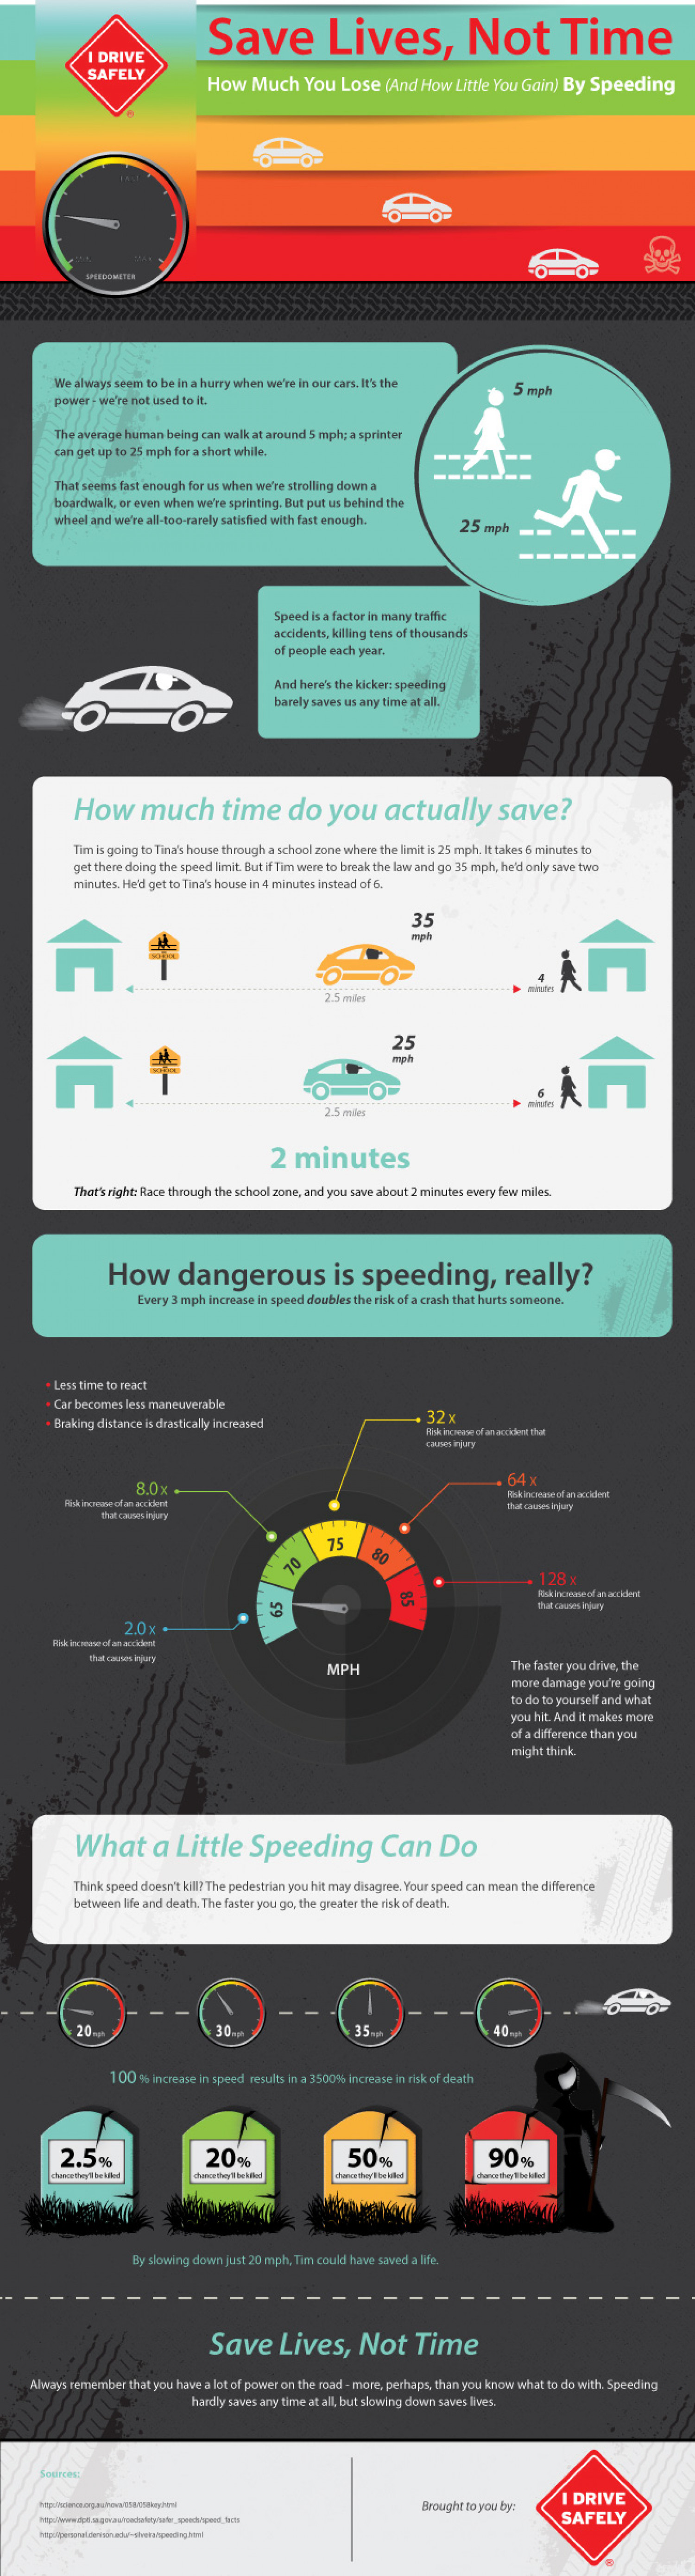 Save Lives, Not Time: The Dangers of Speeding Infographic